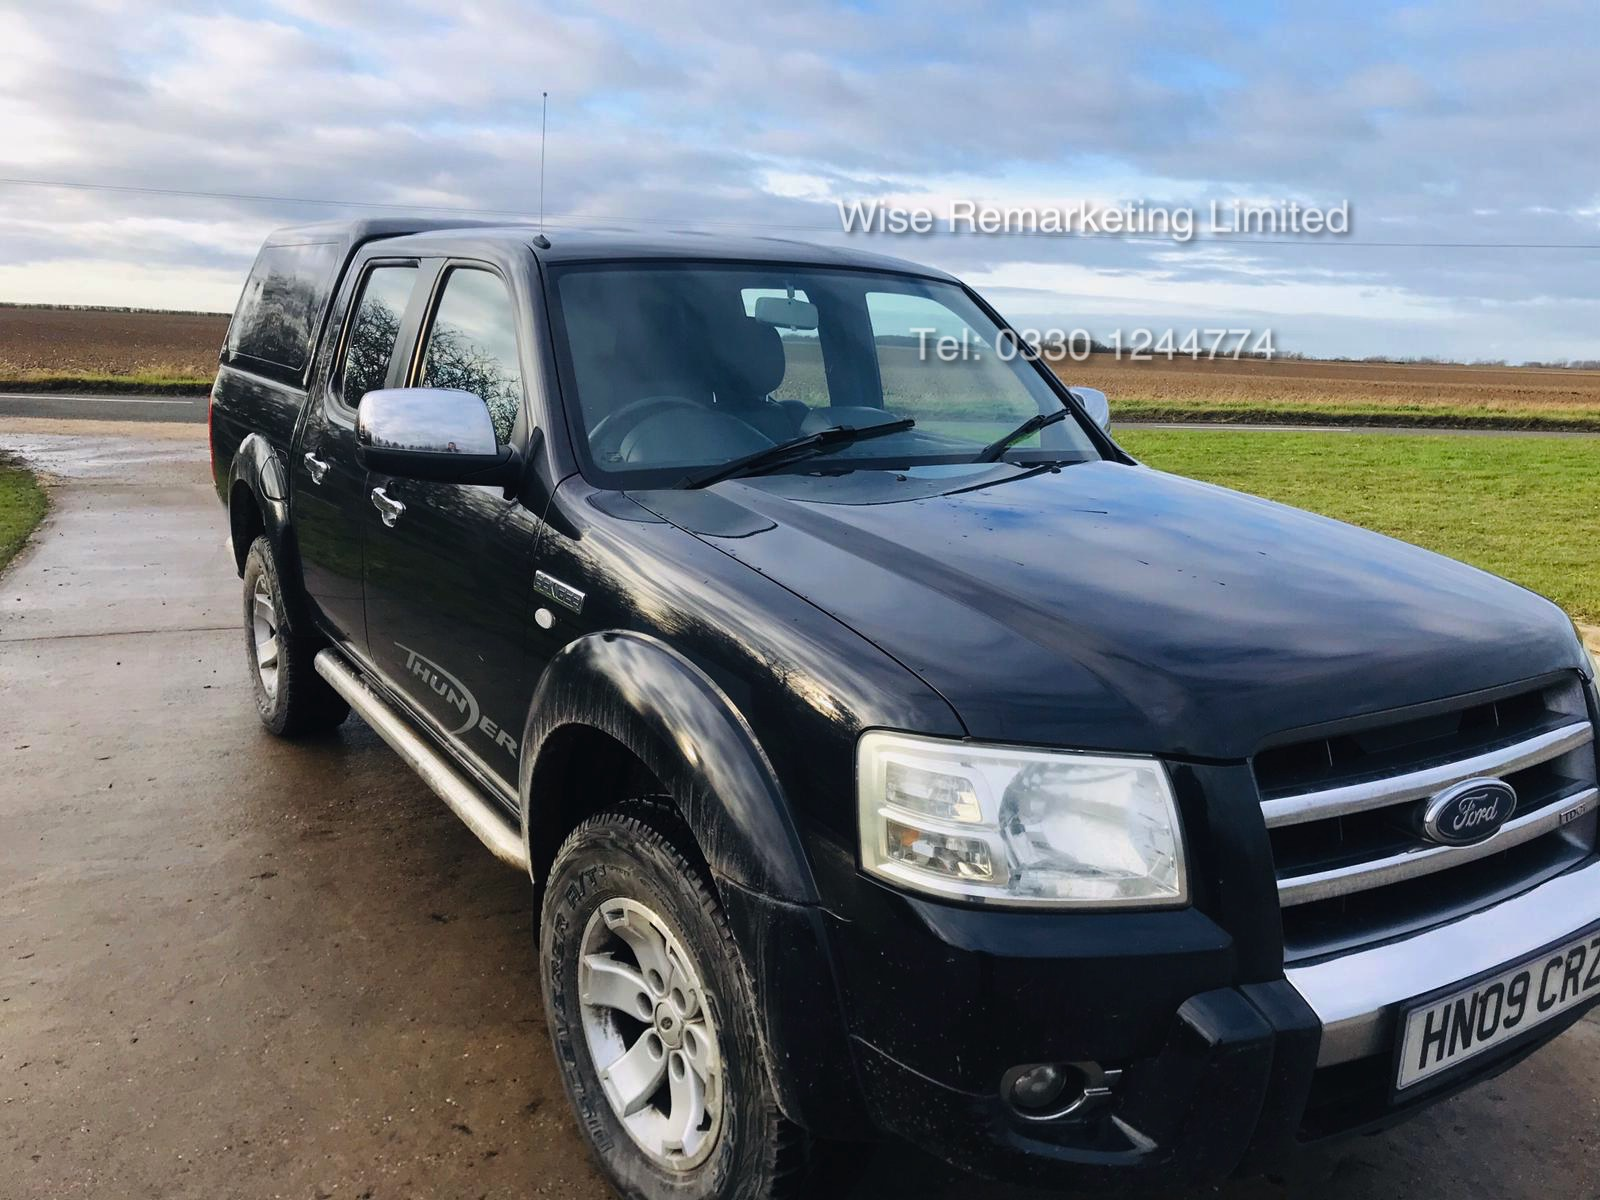 (RESERVE MET) Ford Ranger Thunder 2.5 Double Cab Pick Up - 2009 09 Reg - 4x4 - Service History - Image 4 of 17